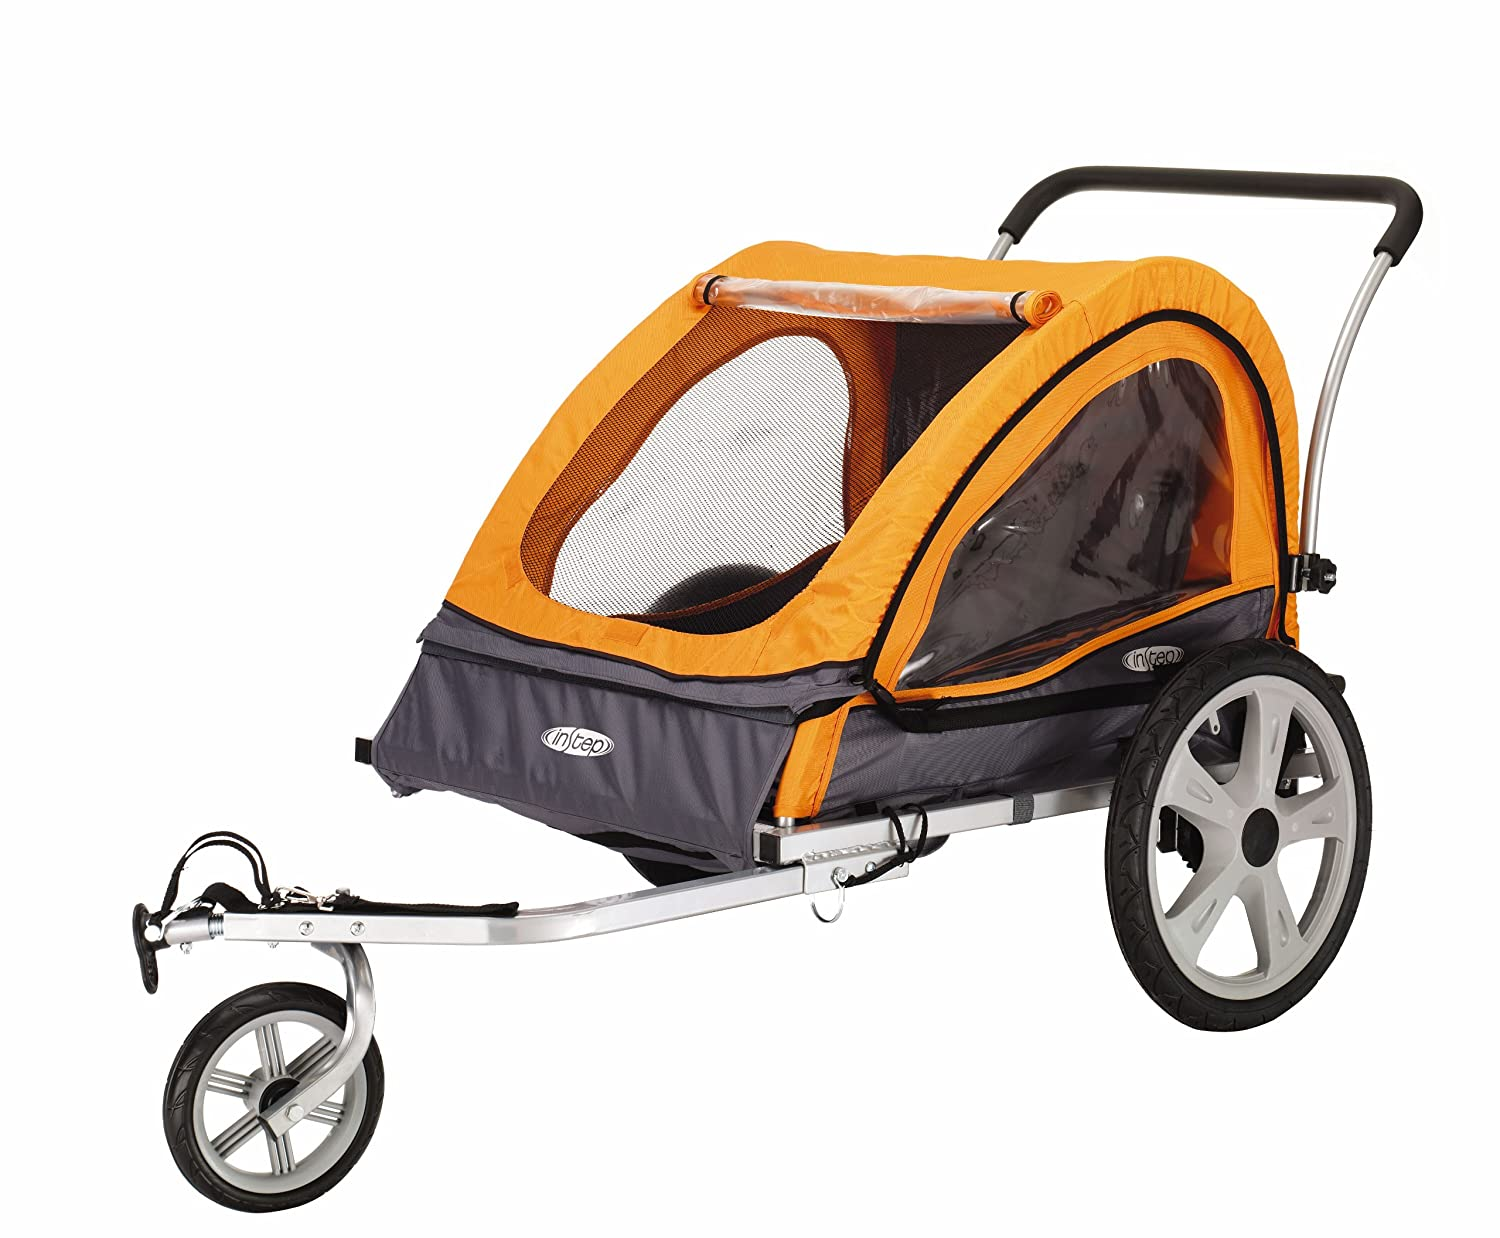 Instep Bike Trailer/Stroller: Amazon.ca: Sports & Outdoors